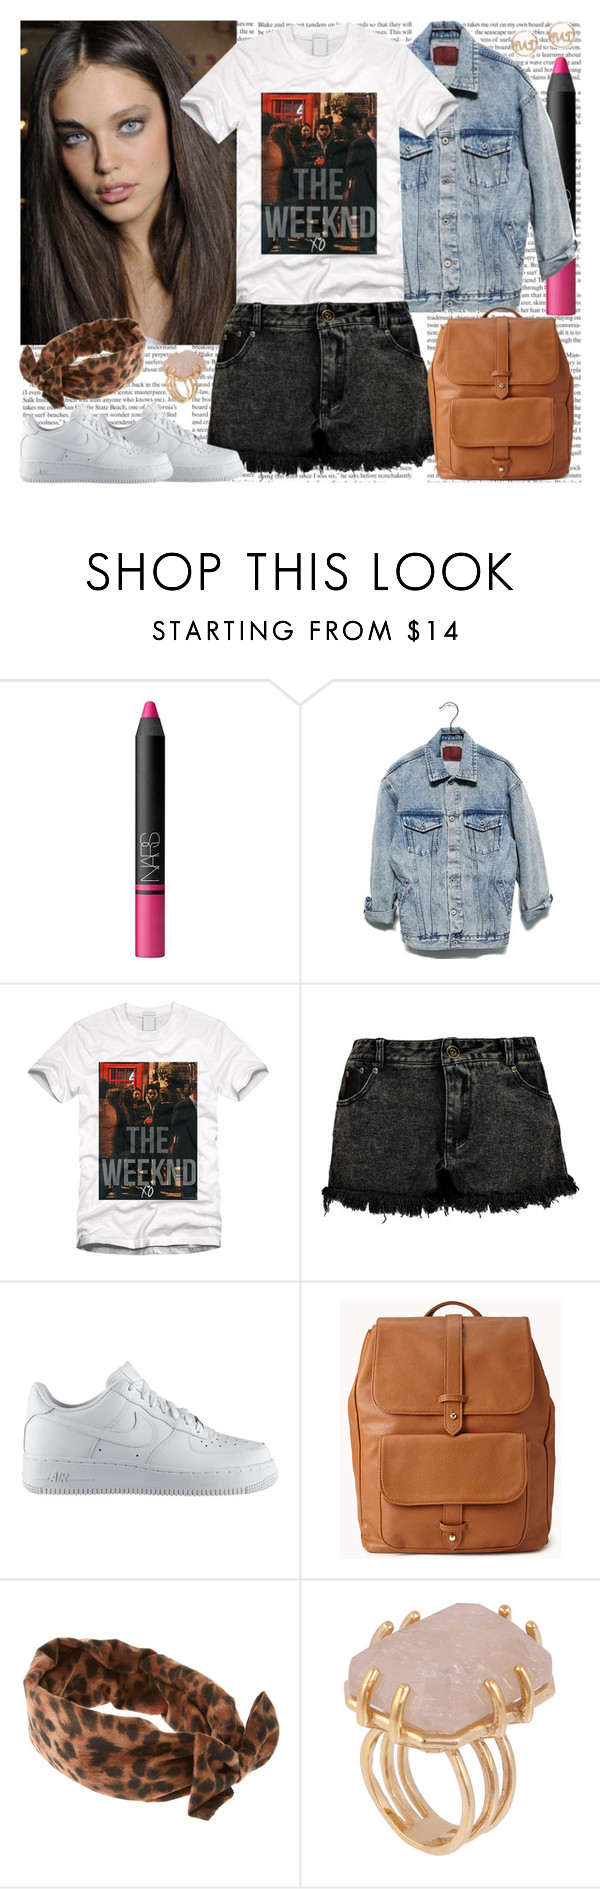 """This the shit that I live for, with the people I'd die for."" by mariaalovett ❤ liked on Polyvore featuring NARS Cosmetics, Trilogy, Boohoo, NIKE, Forever 21, River Island and Kelly Wearstler"